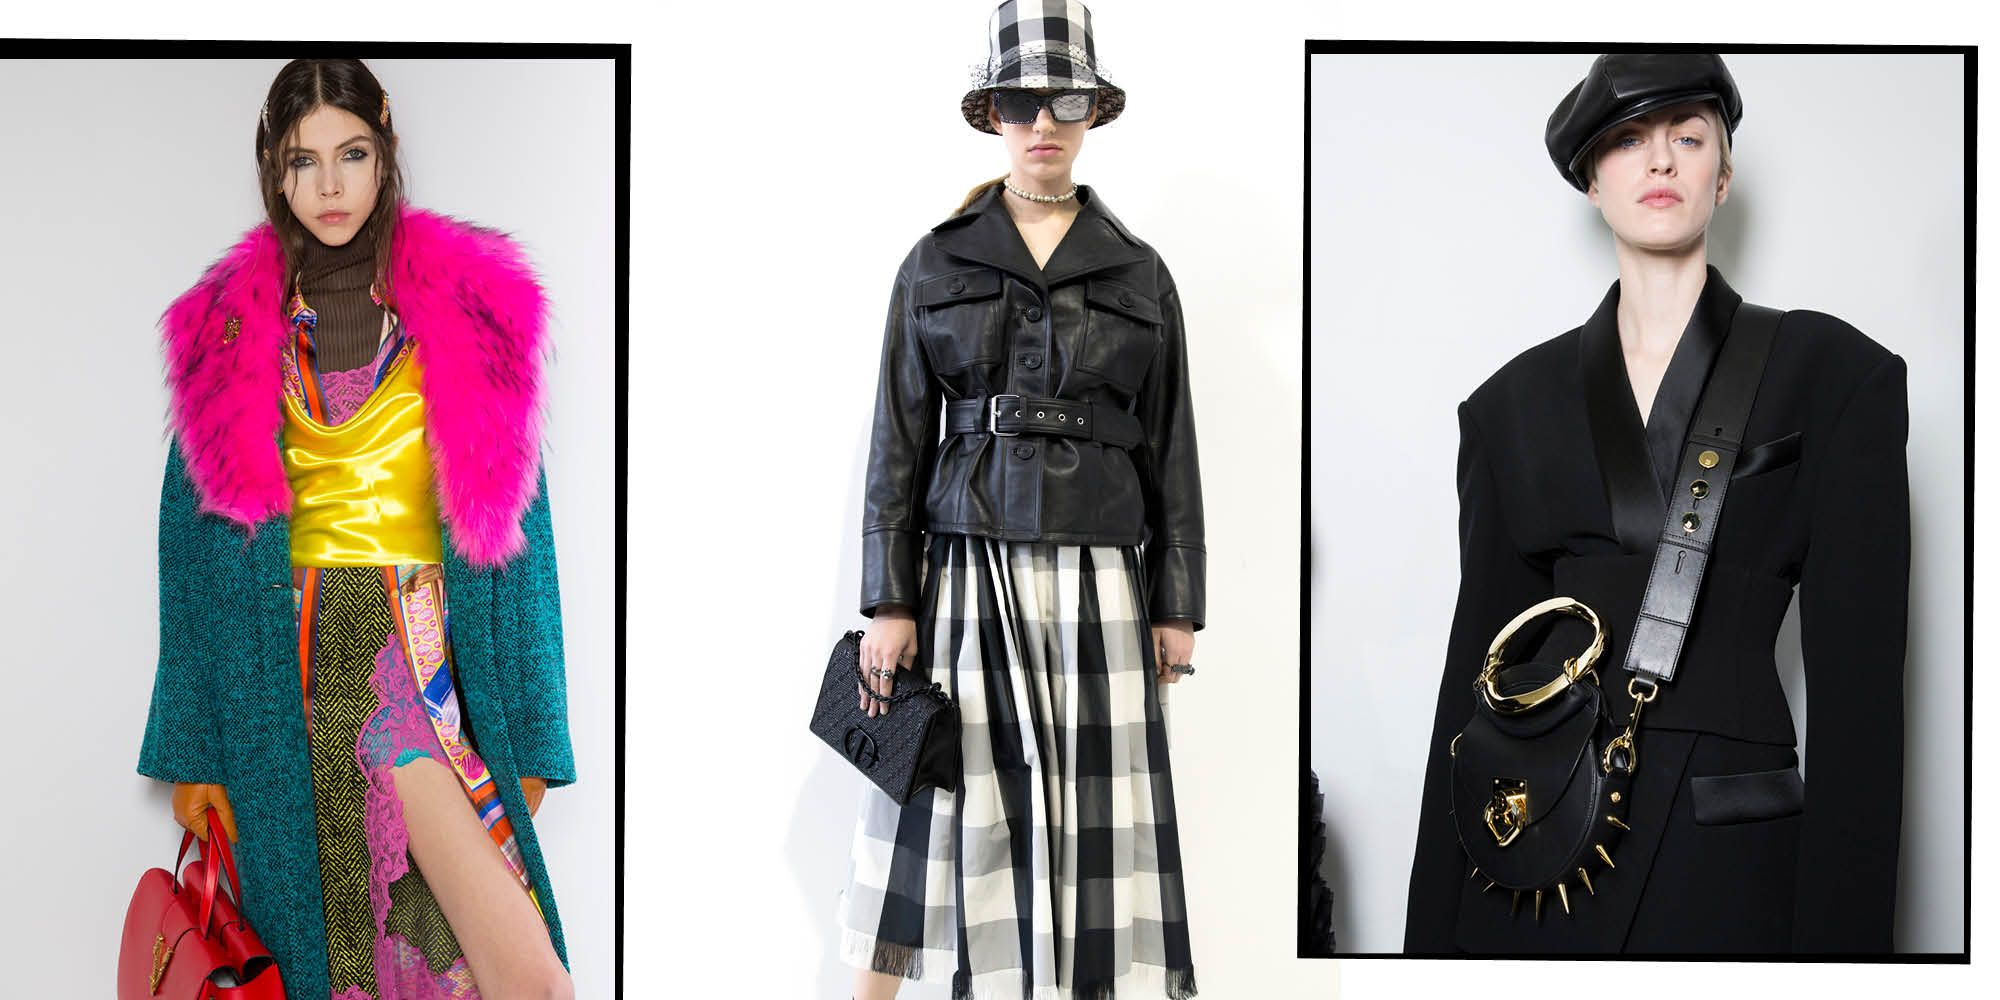 7 Fashion Trends That Will Be Big In 2020